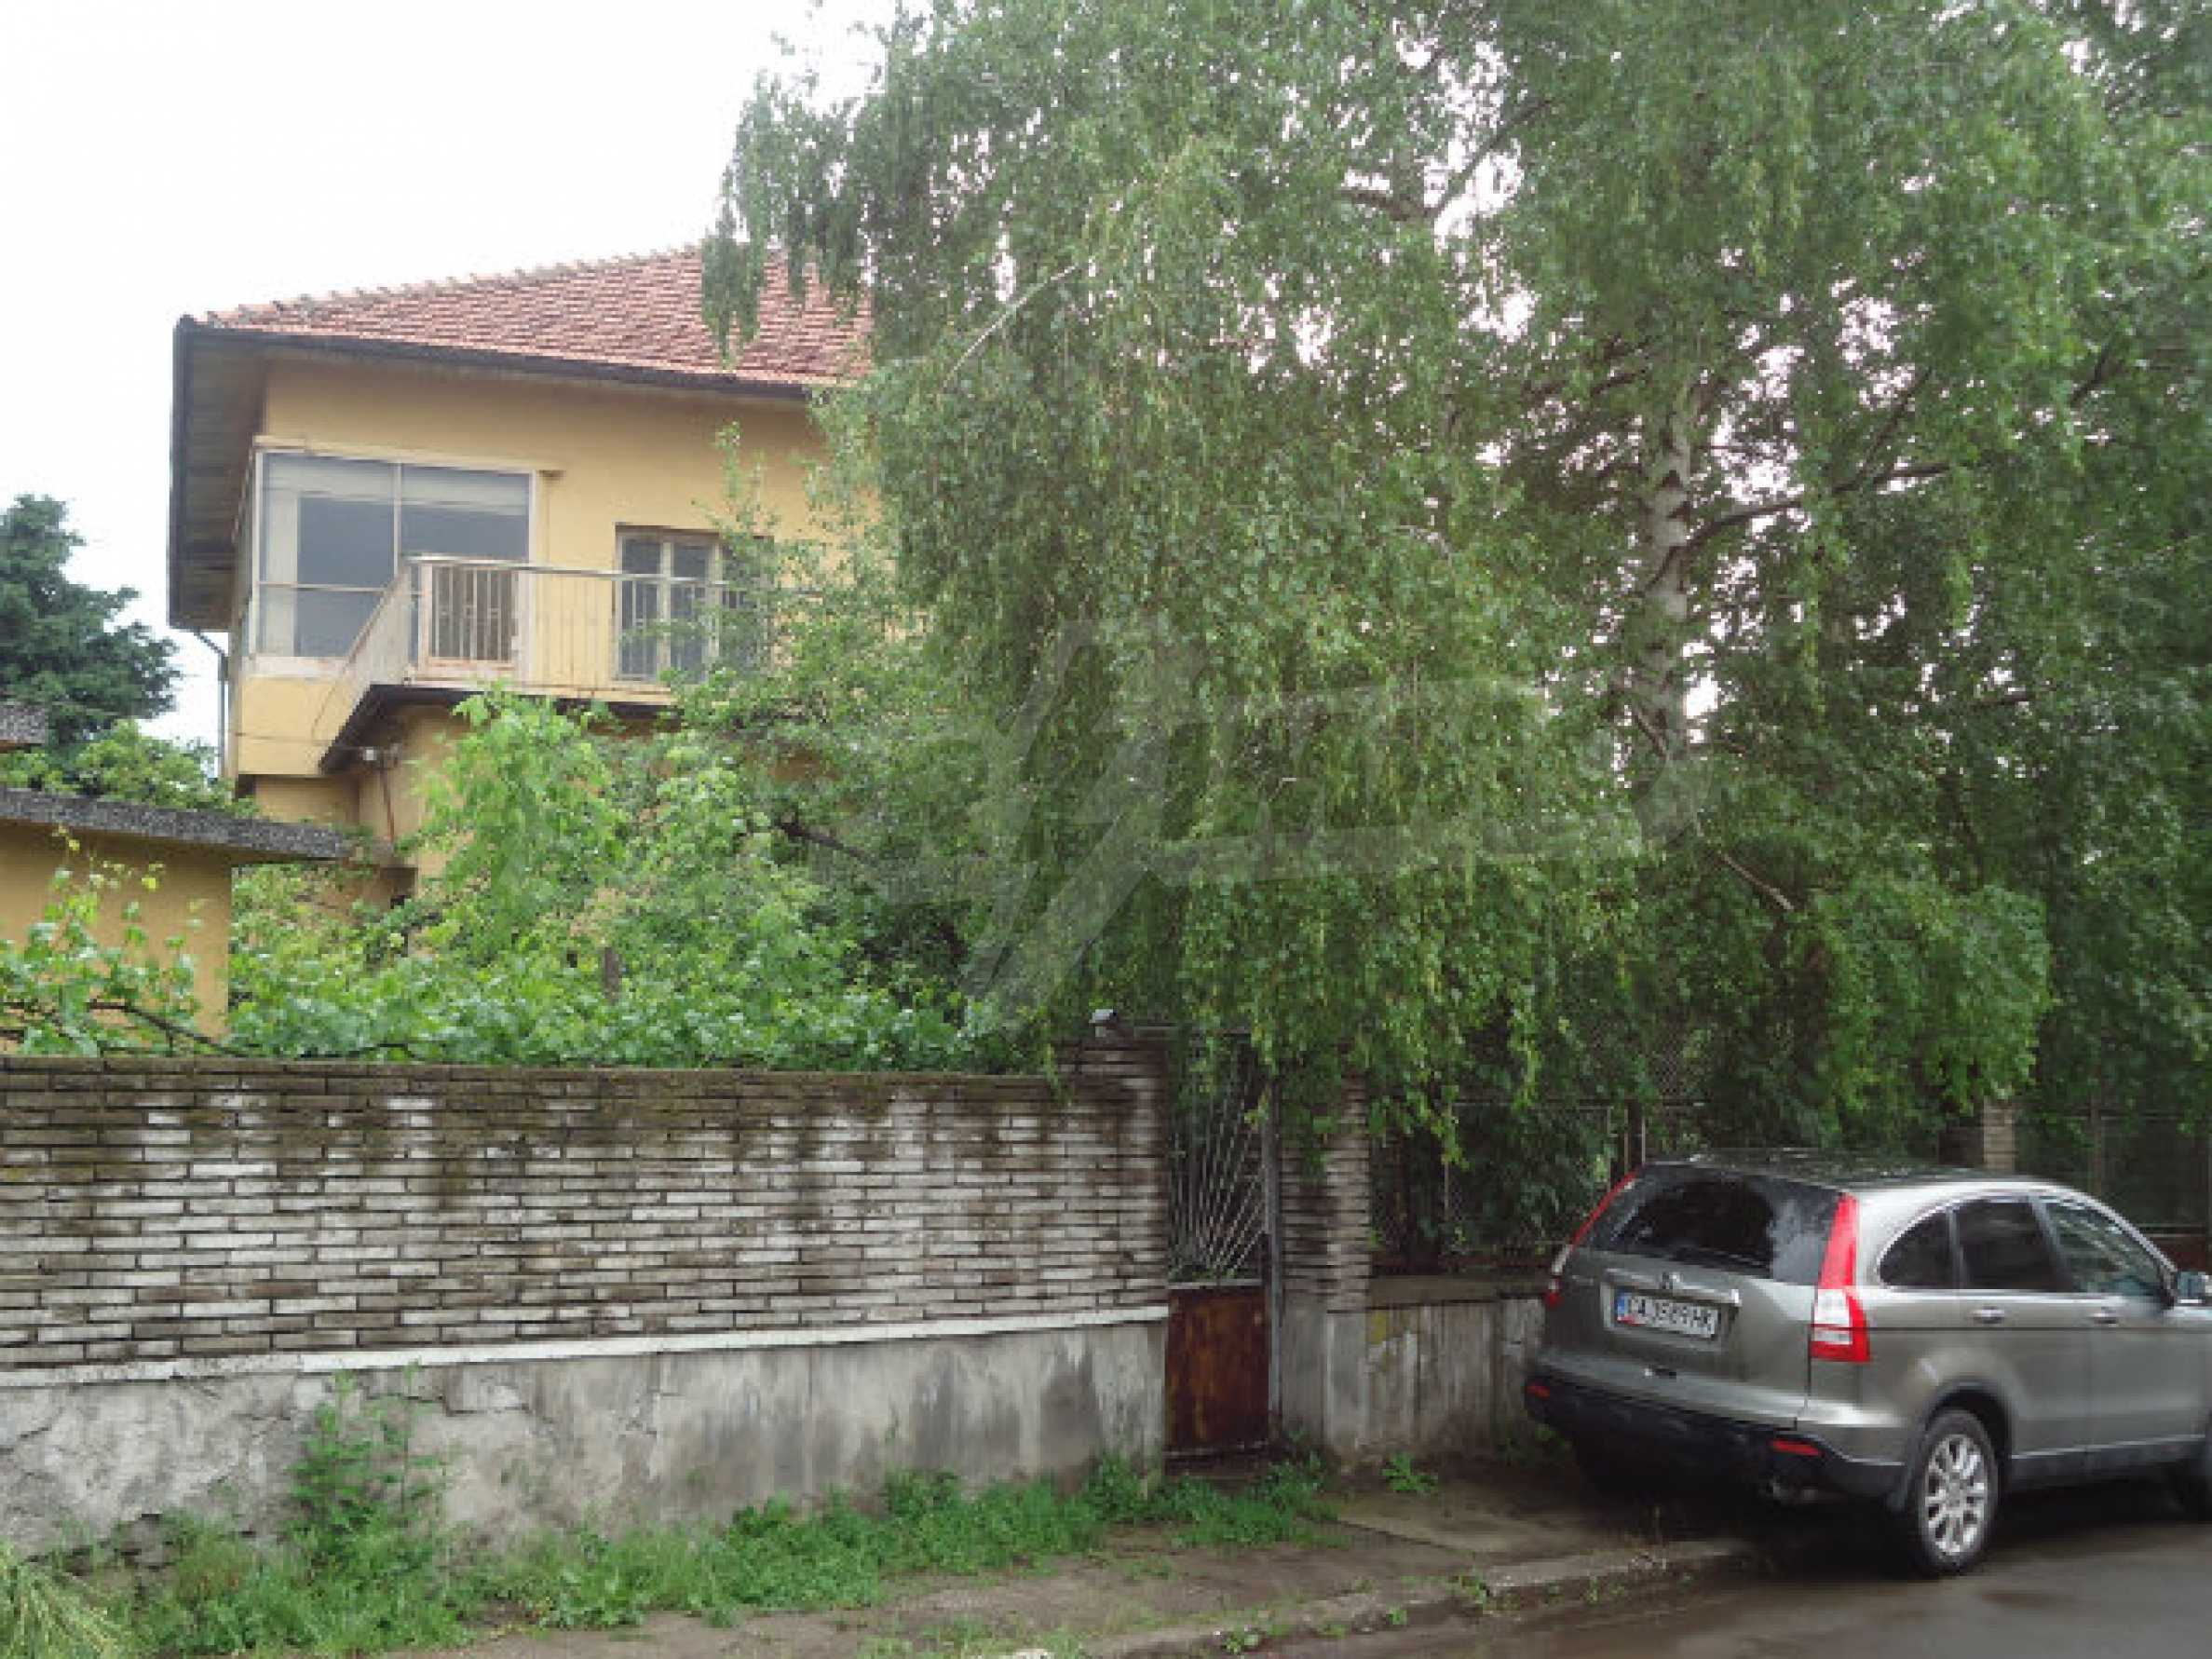 Building with garden area in the town of Kyustendil 1